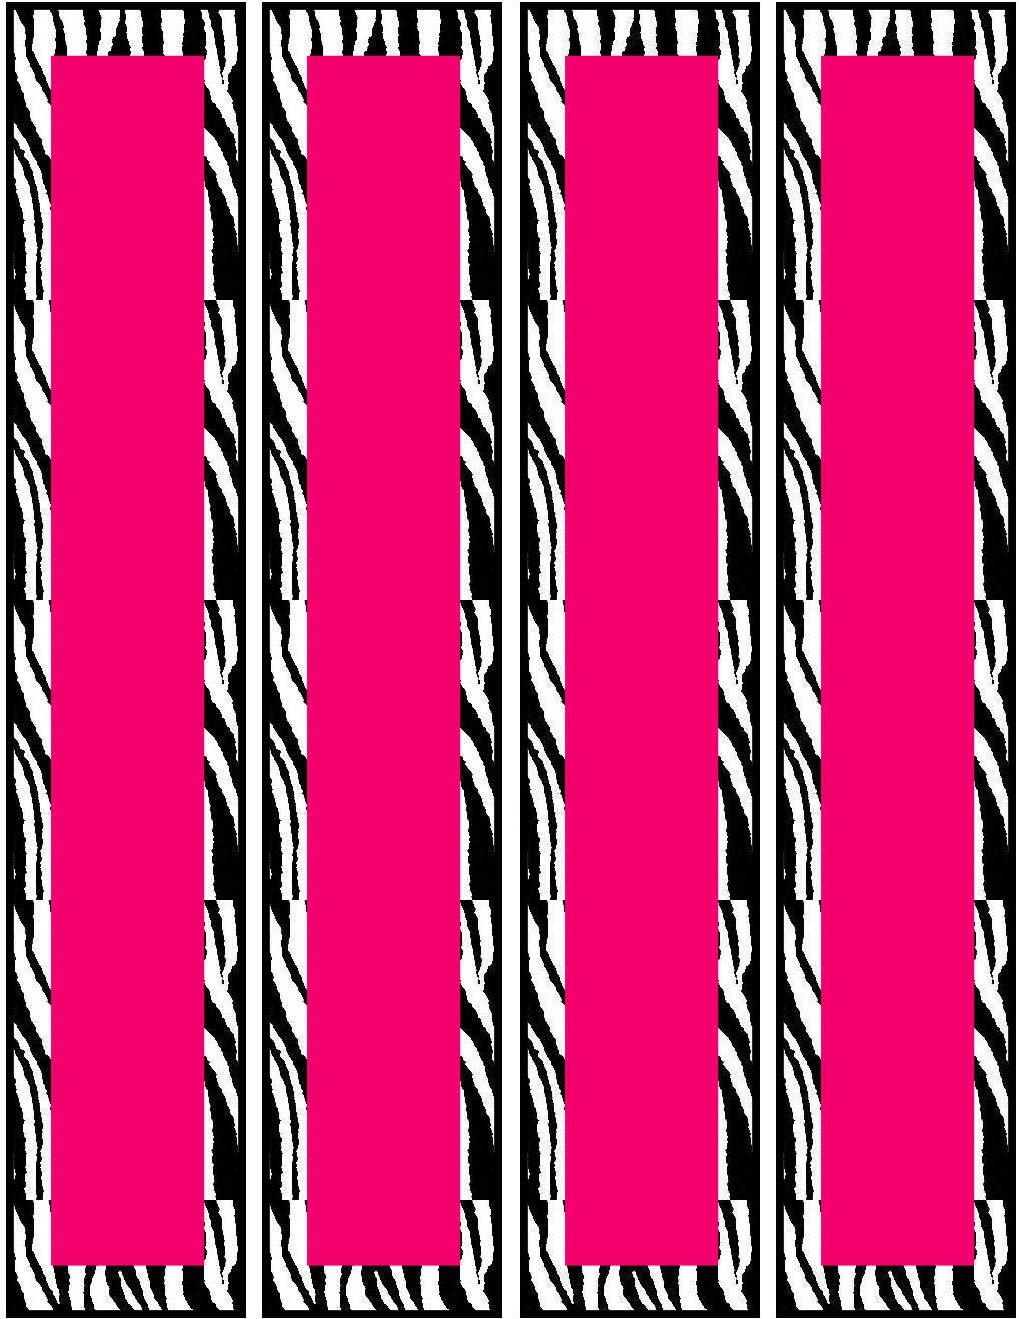 printable customizable zebra stripes party invitation glitter lambs nail polish pink zebra food label cards and printable cupcake topper templates for a diy pink zebra birthday party